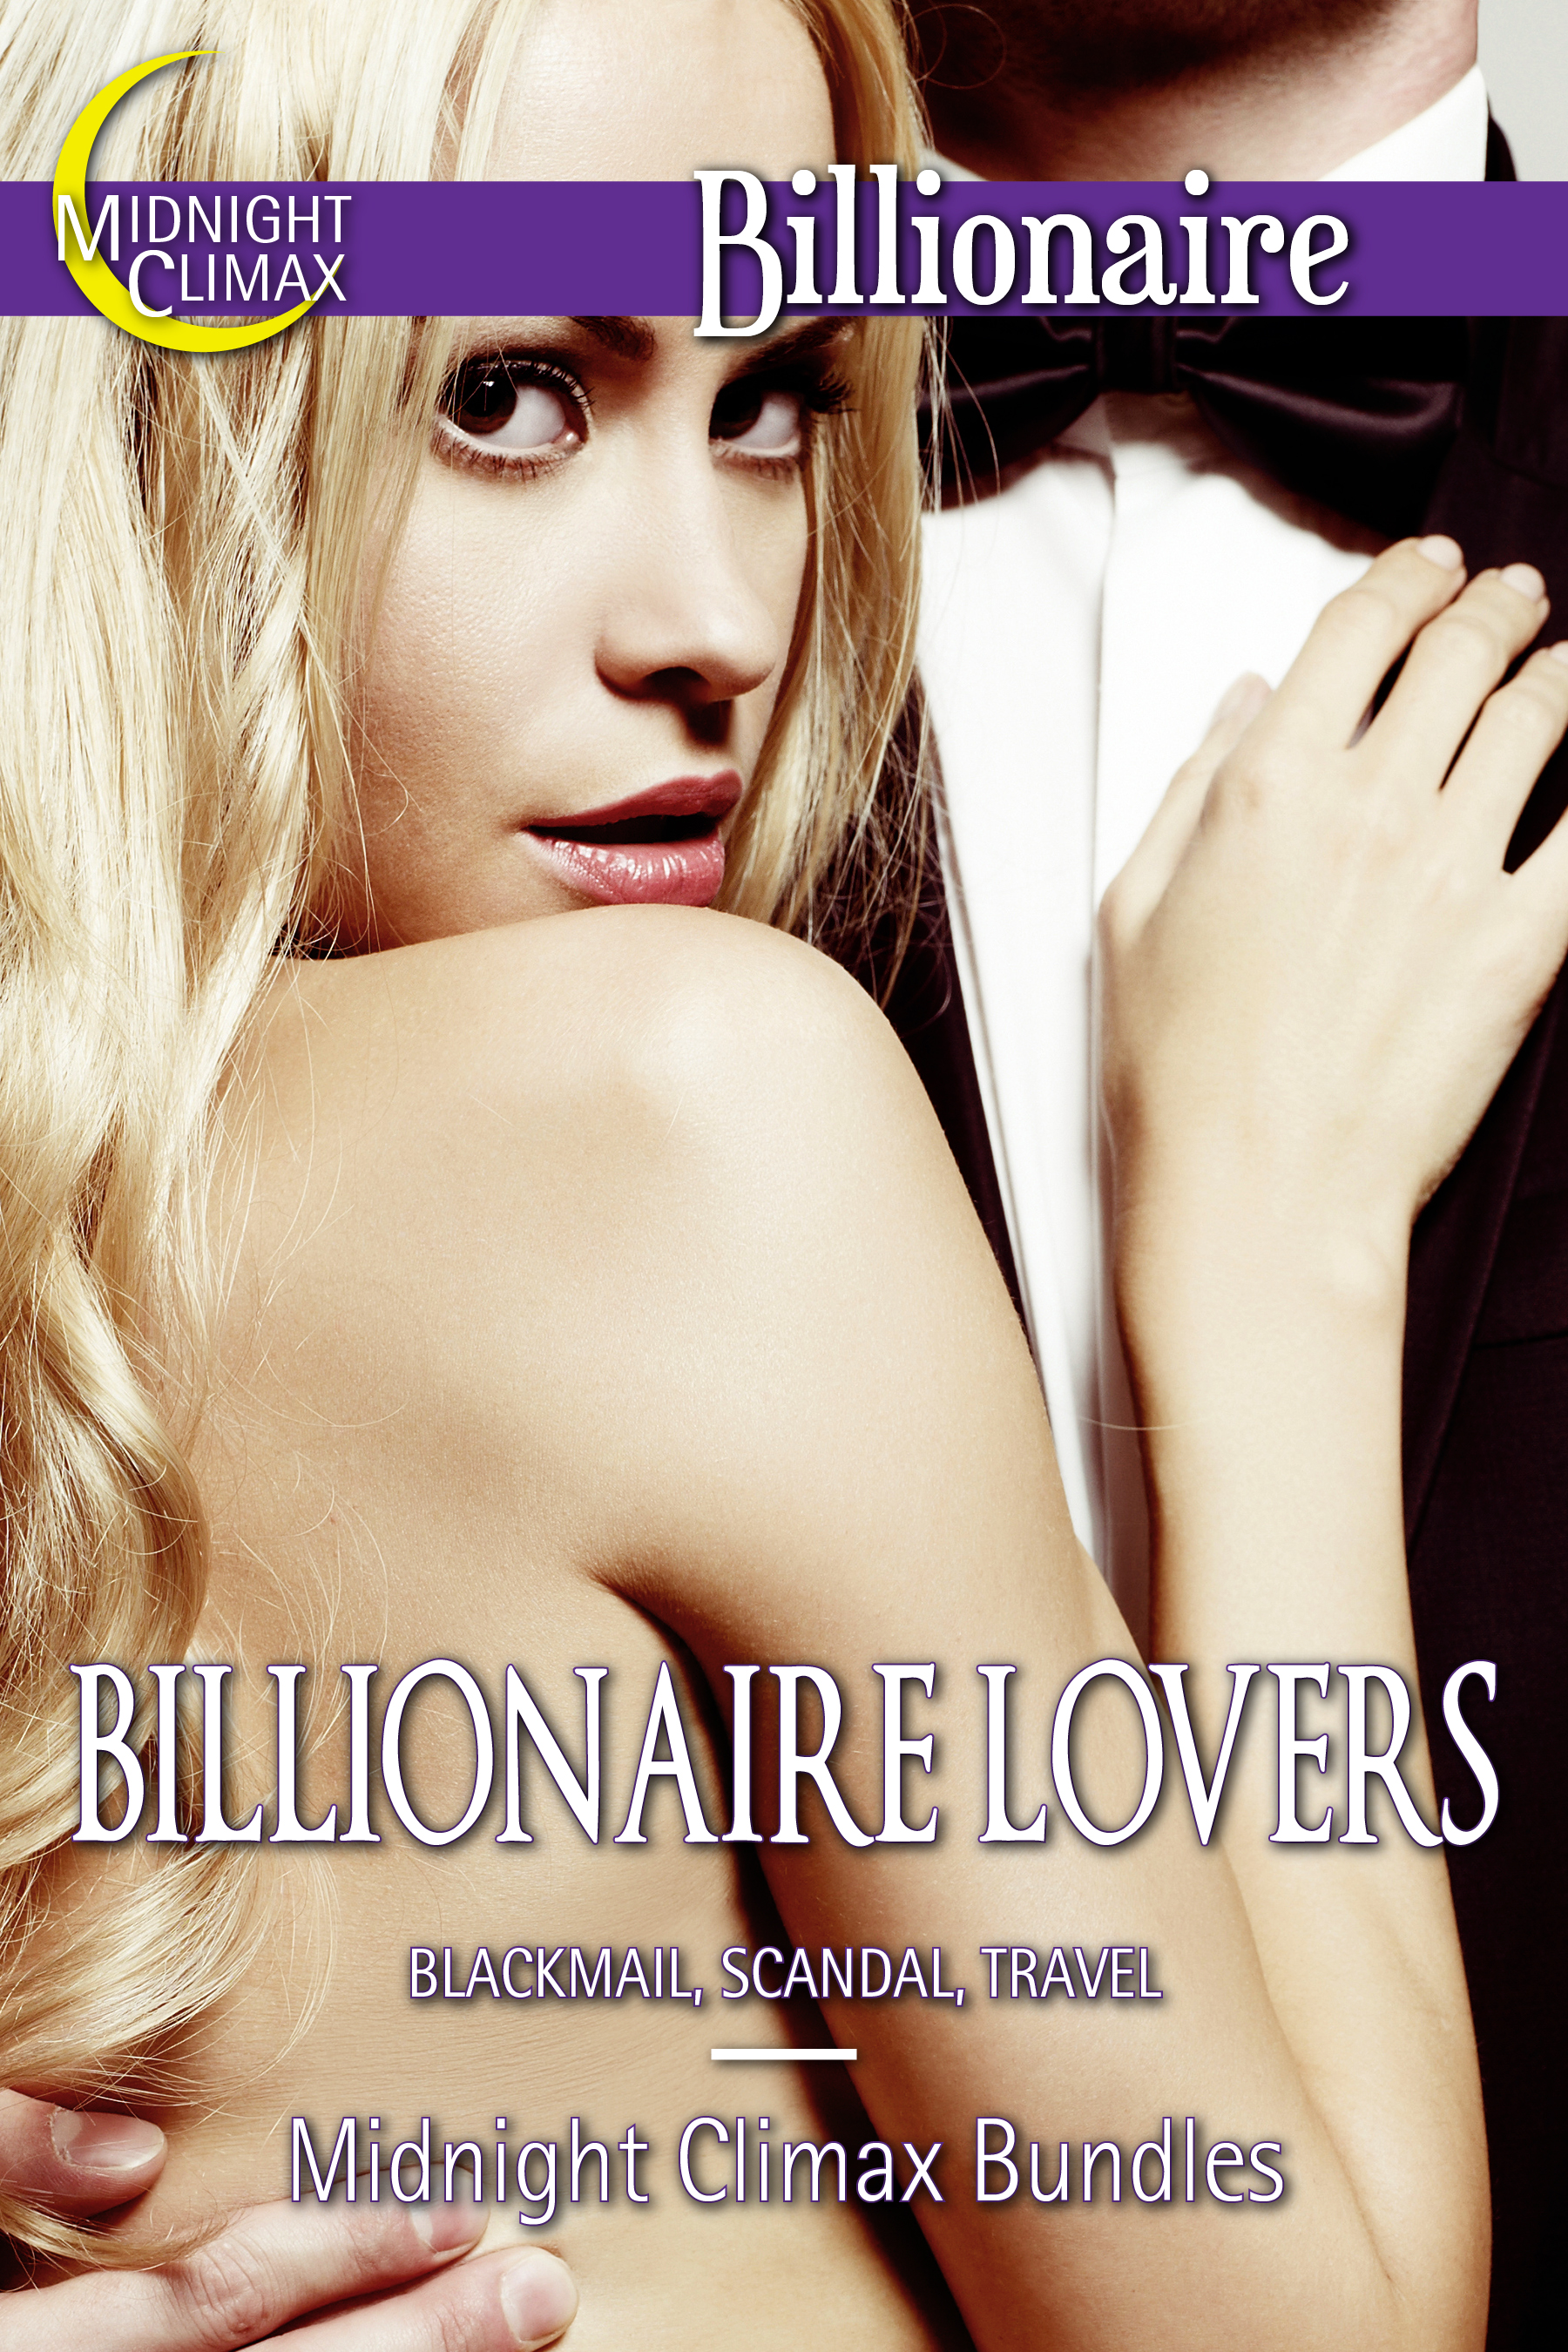 Midnight Climax Bundles - Billionaire Lovers (Blackmail, Scandal, Travel)